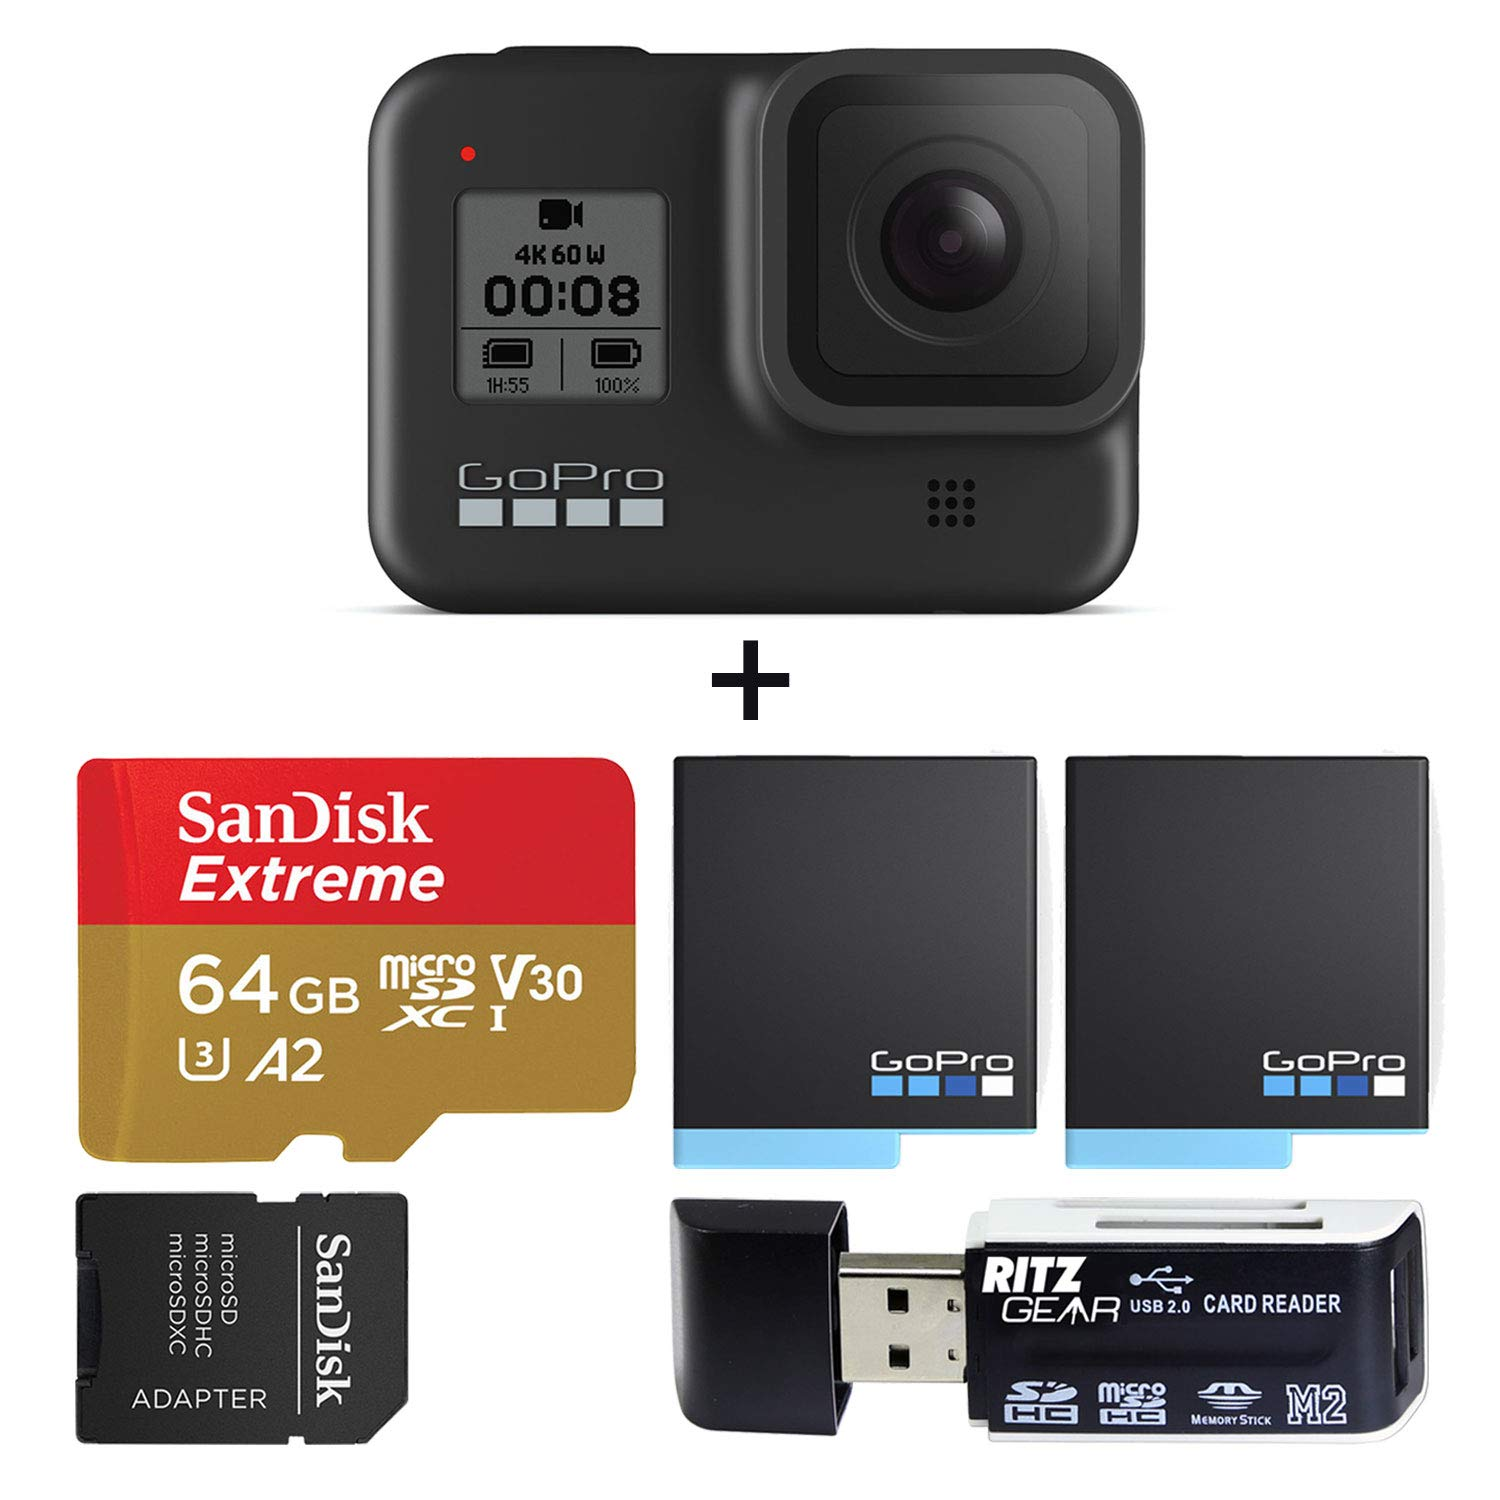 GoPro HERO8 Black Waterproof Action Camera with Touch Screen 4K Ultra HD Video 12MP Photos 1080p Live with Accessory Bundle + 2 Extra GoPro USA Batteries + Sandisk 64GB MicroSDHC U3 + Ritz Gear Reader